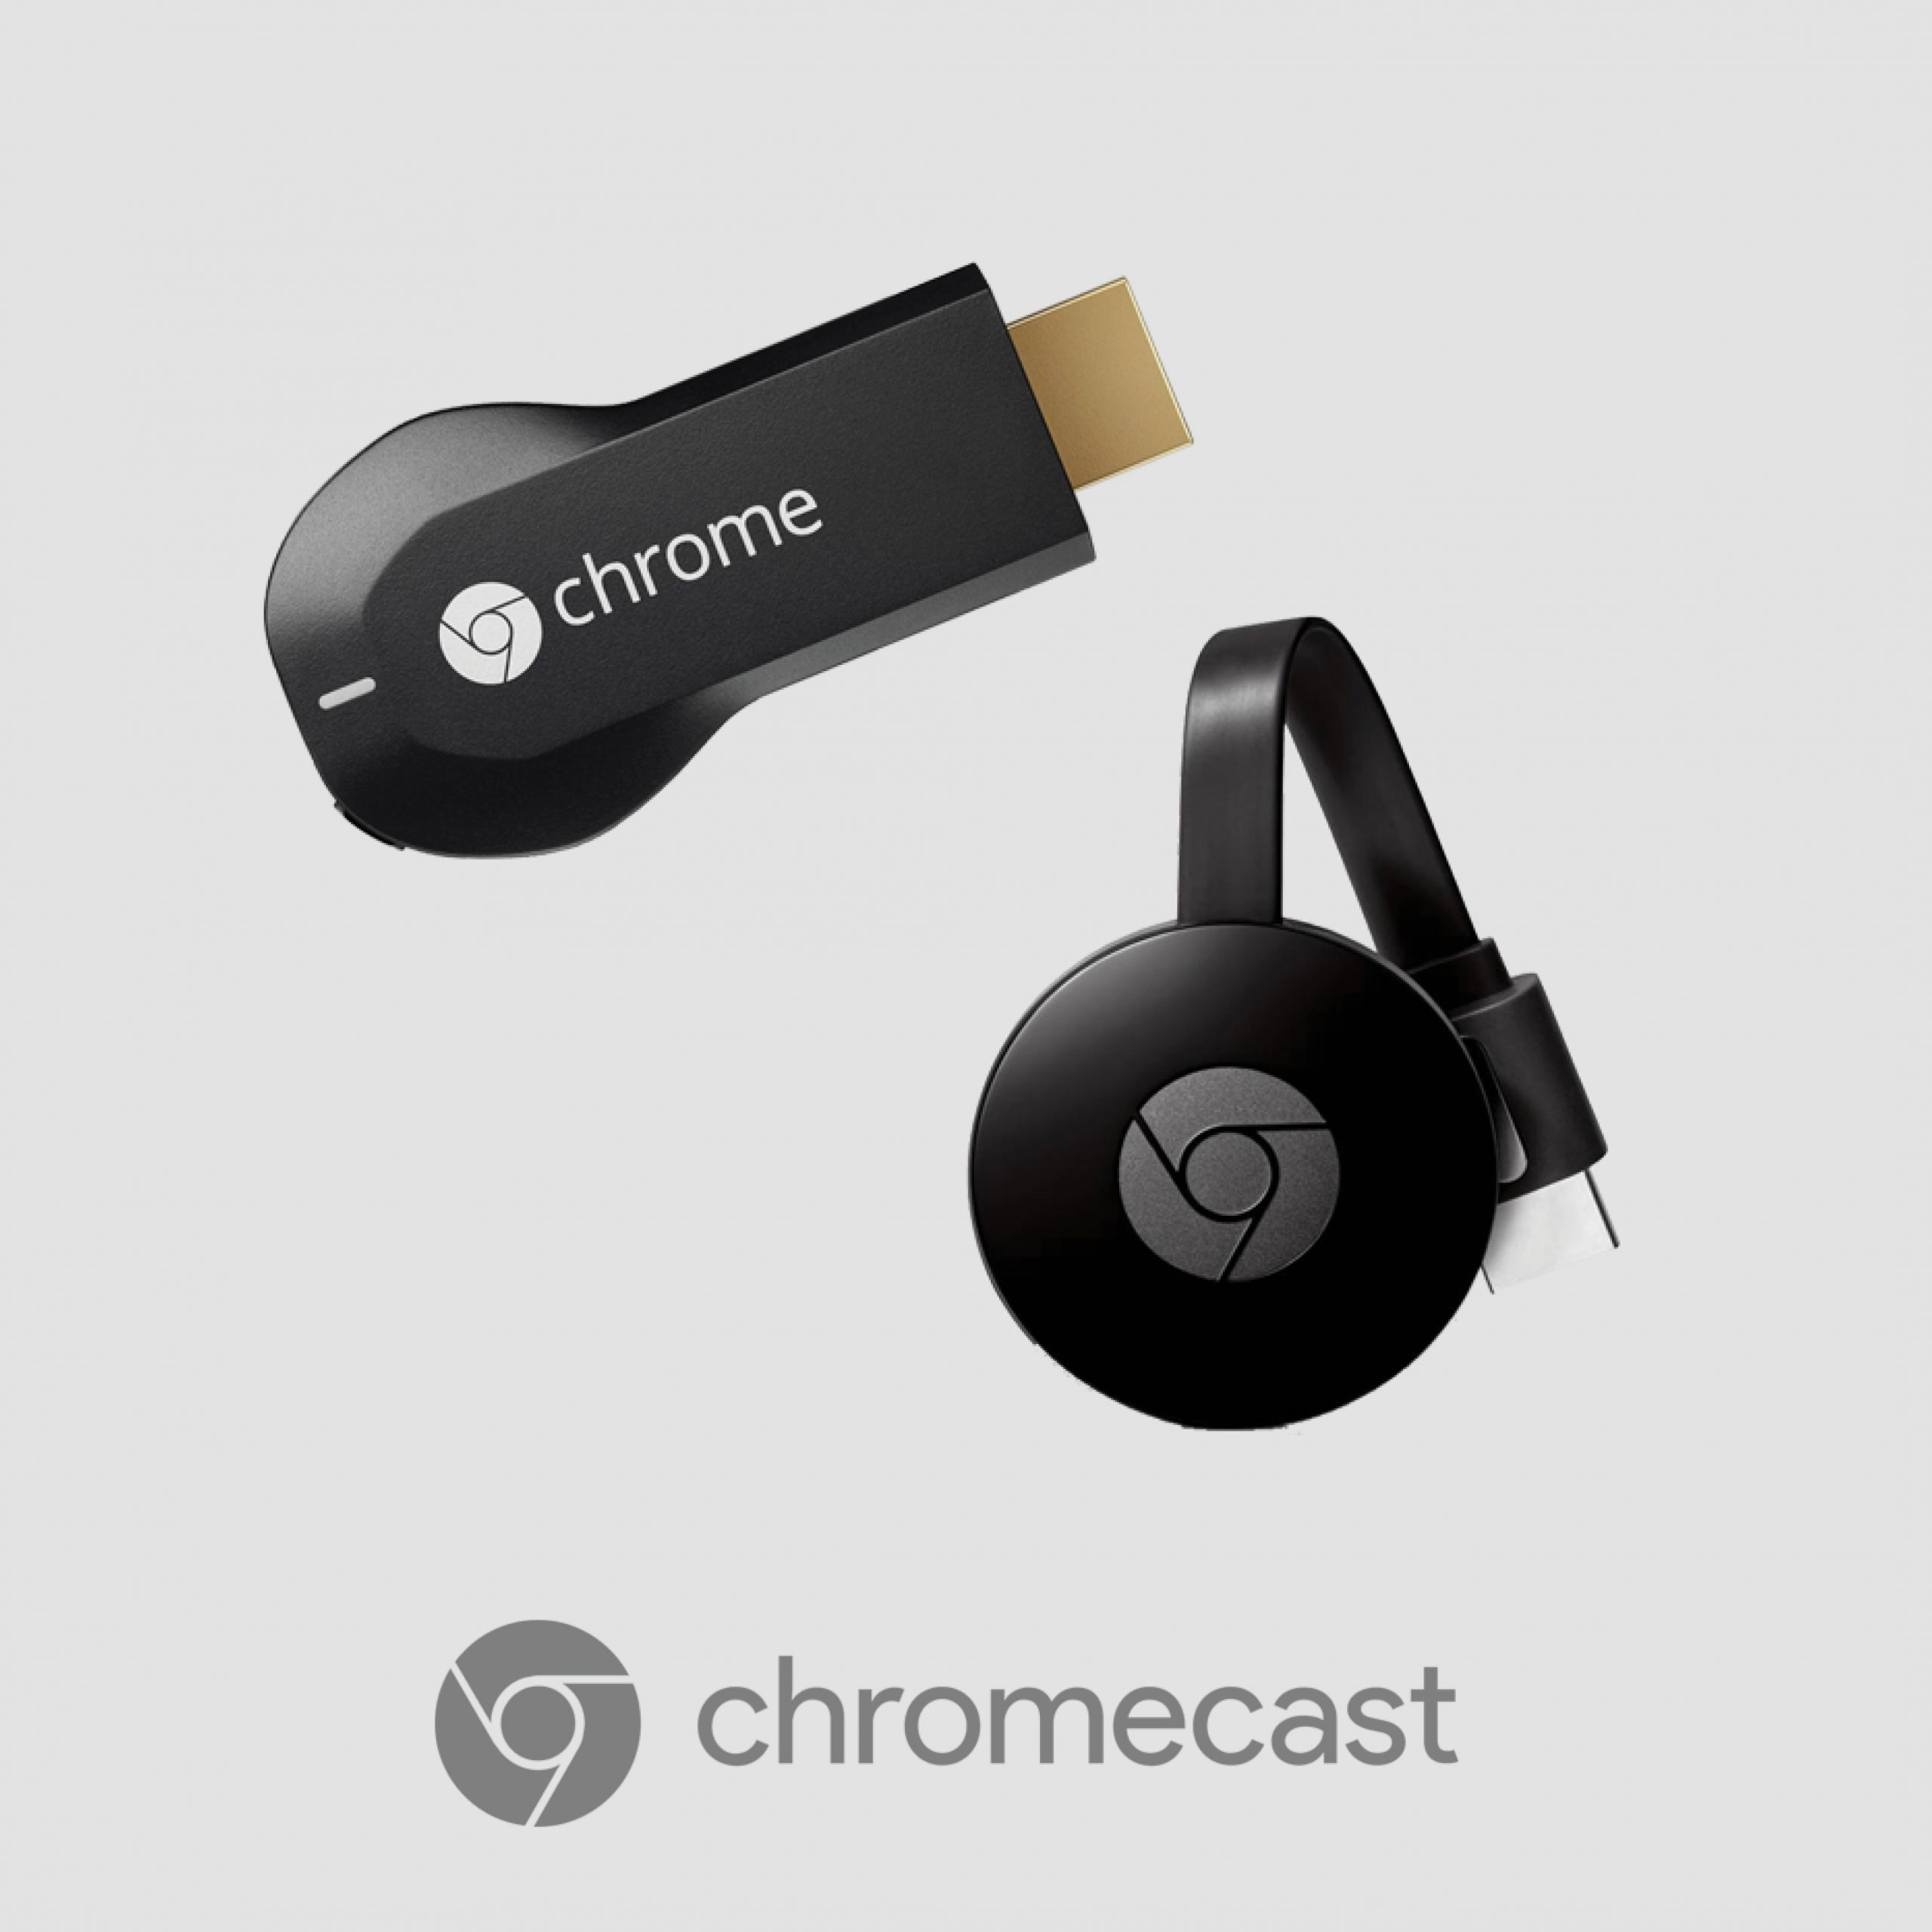 Stream using Google Chromecast